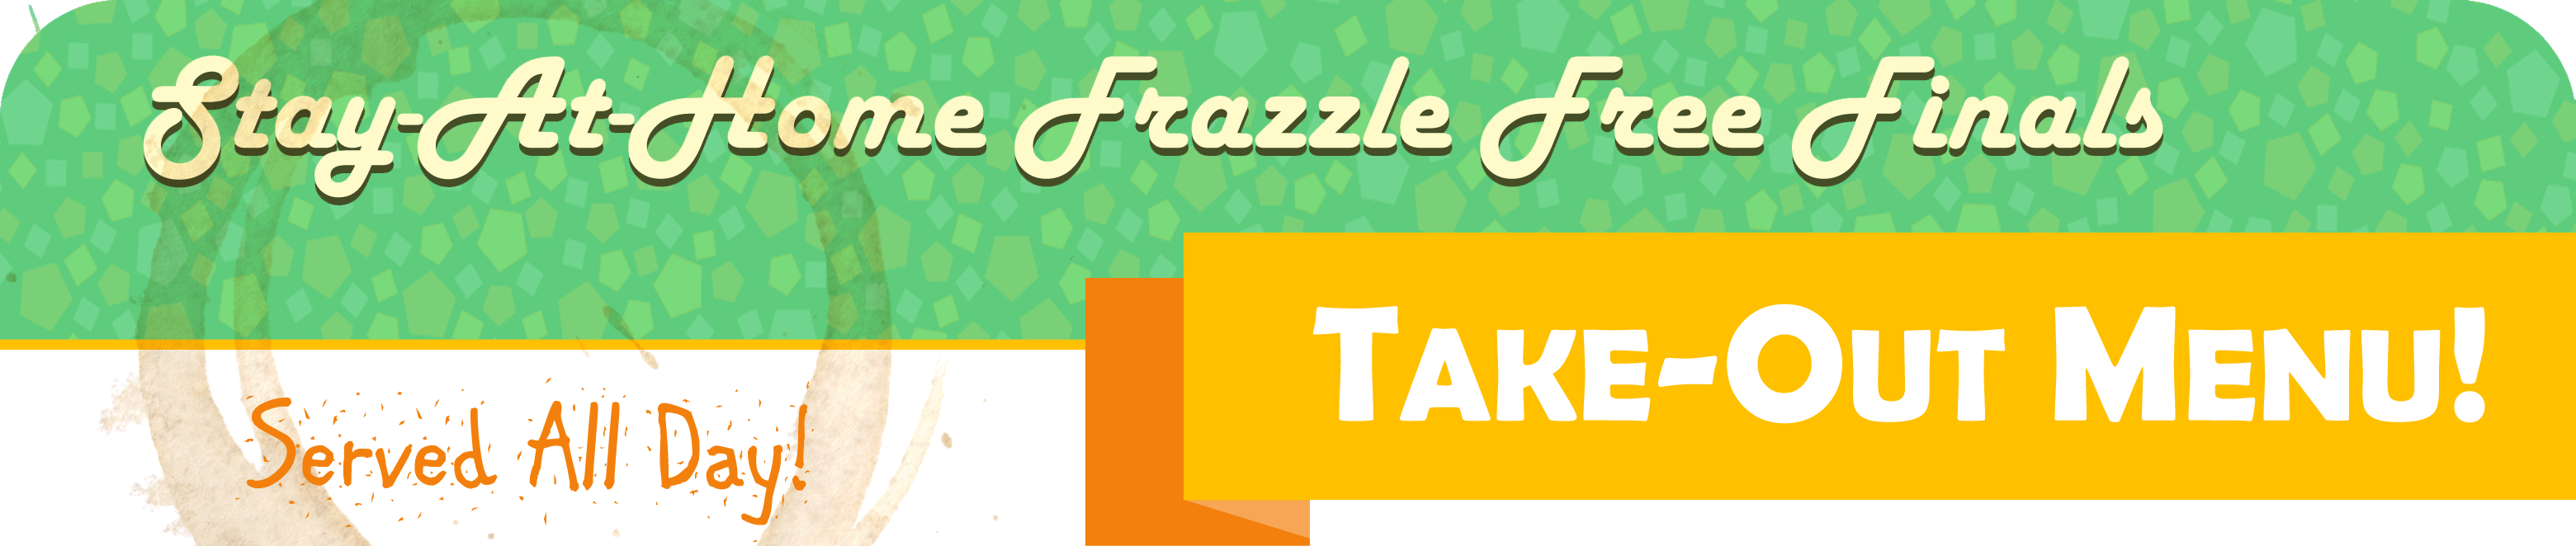 Stay-At-Home Frazzle Free Finals Take-Out Menu! Served all day!